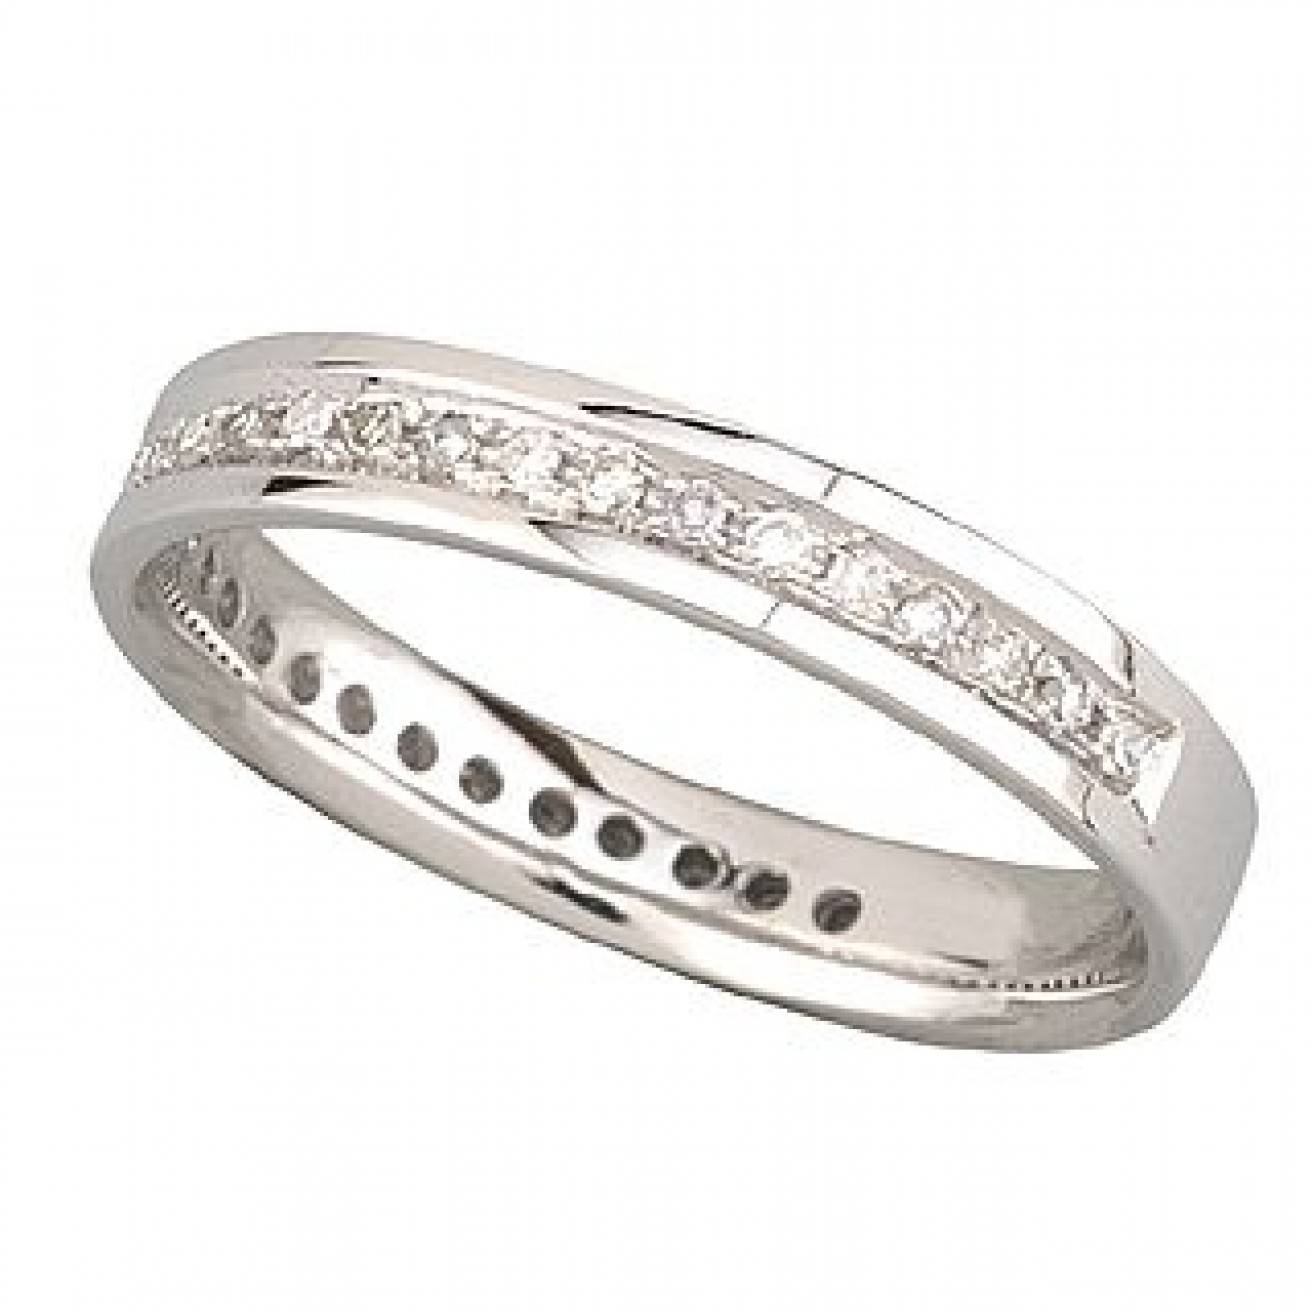 Buy White Gold Wedding Rings Online – Fraser Hart Within White Gold Wedding Rings With Diamonds (View 10 of 15)